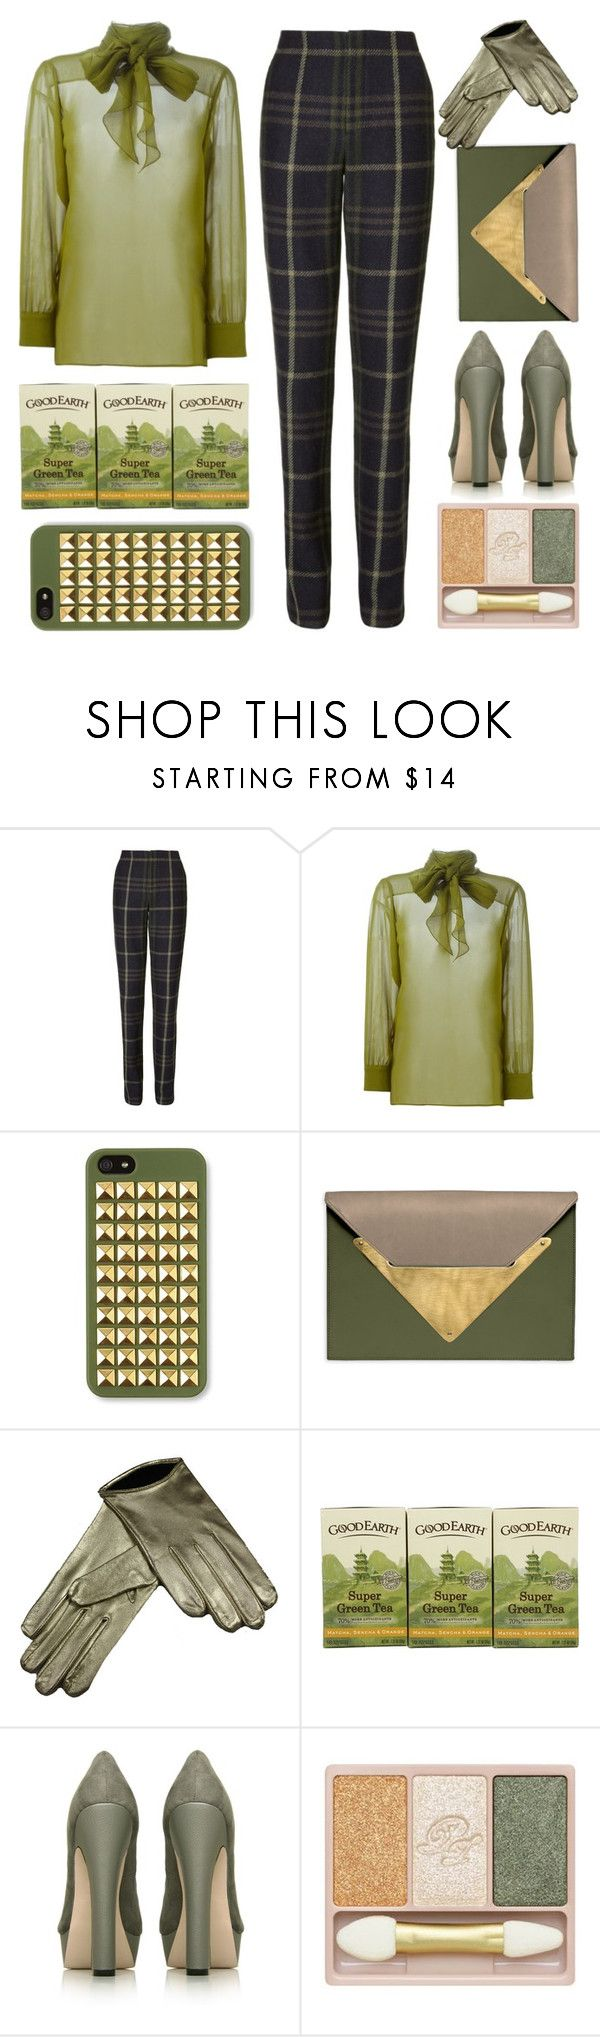 """""""Green"""" by emcf3548 ❤ liked on Polyvore featuring Thakoon Addition, Gucci, Dareen Hakim, Miss KG and Paul & Joe"""